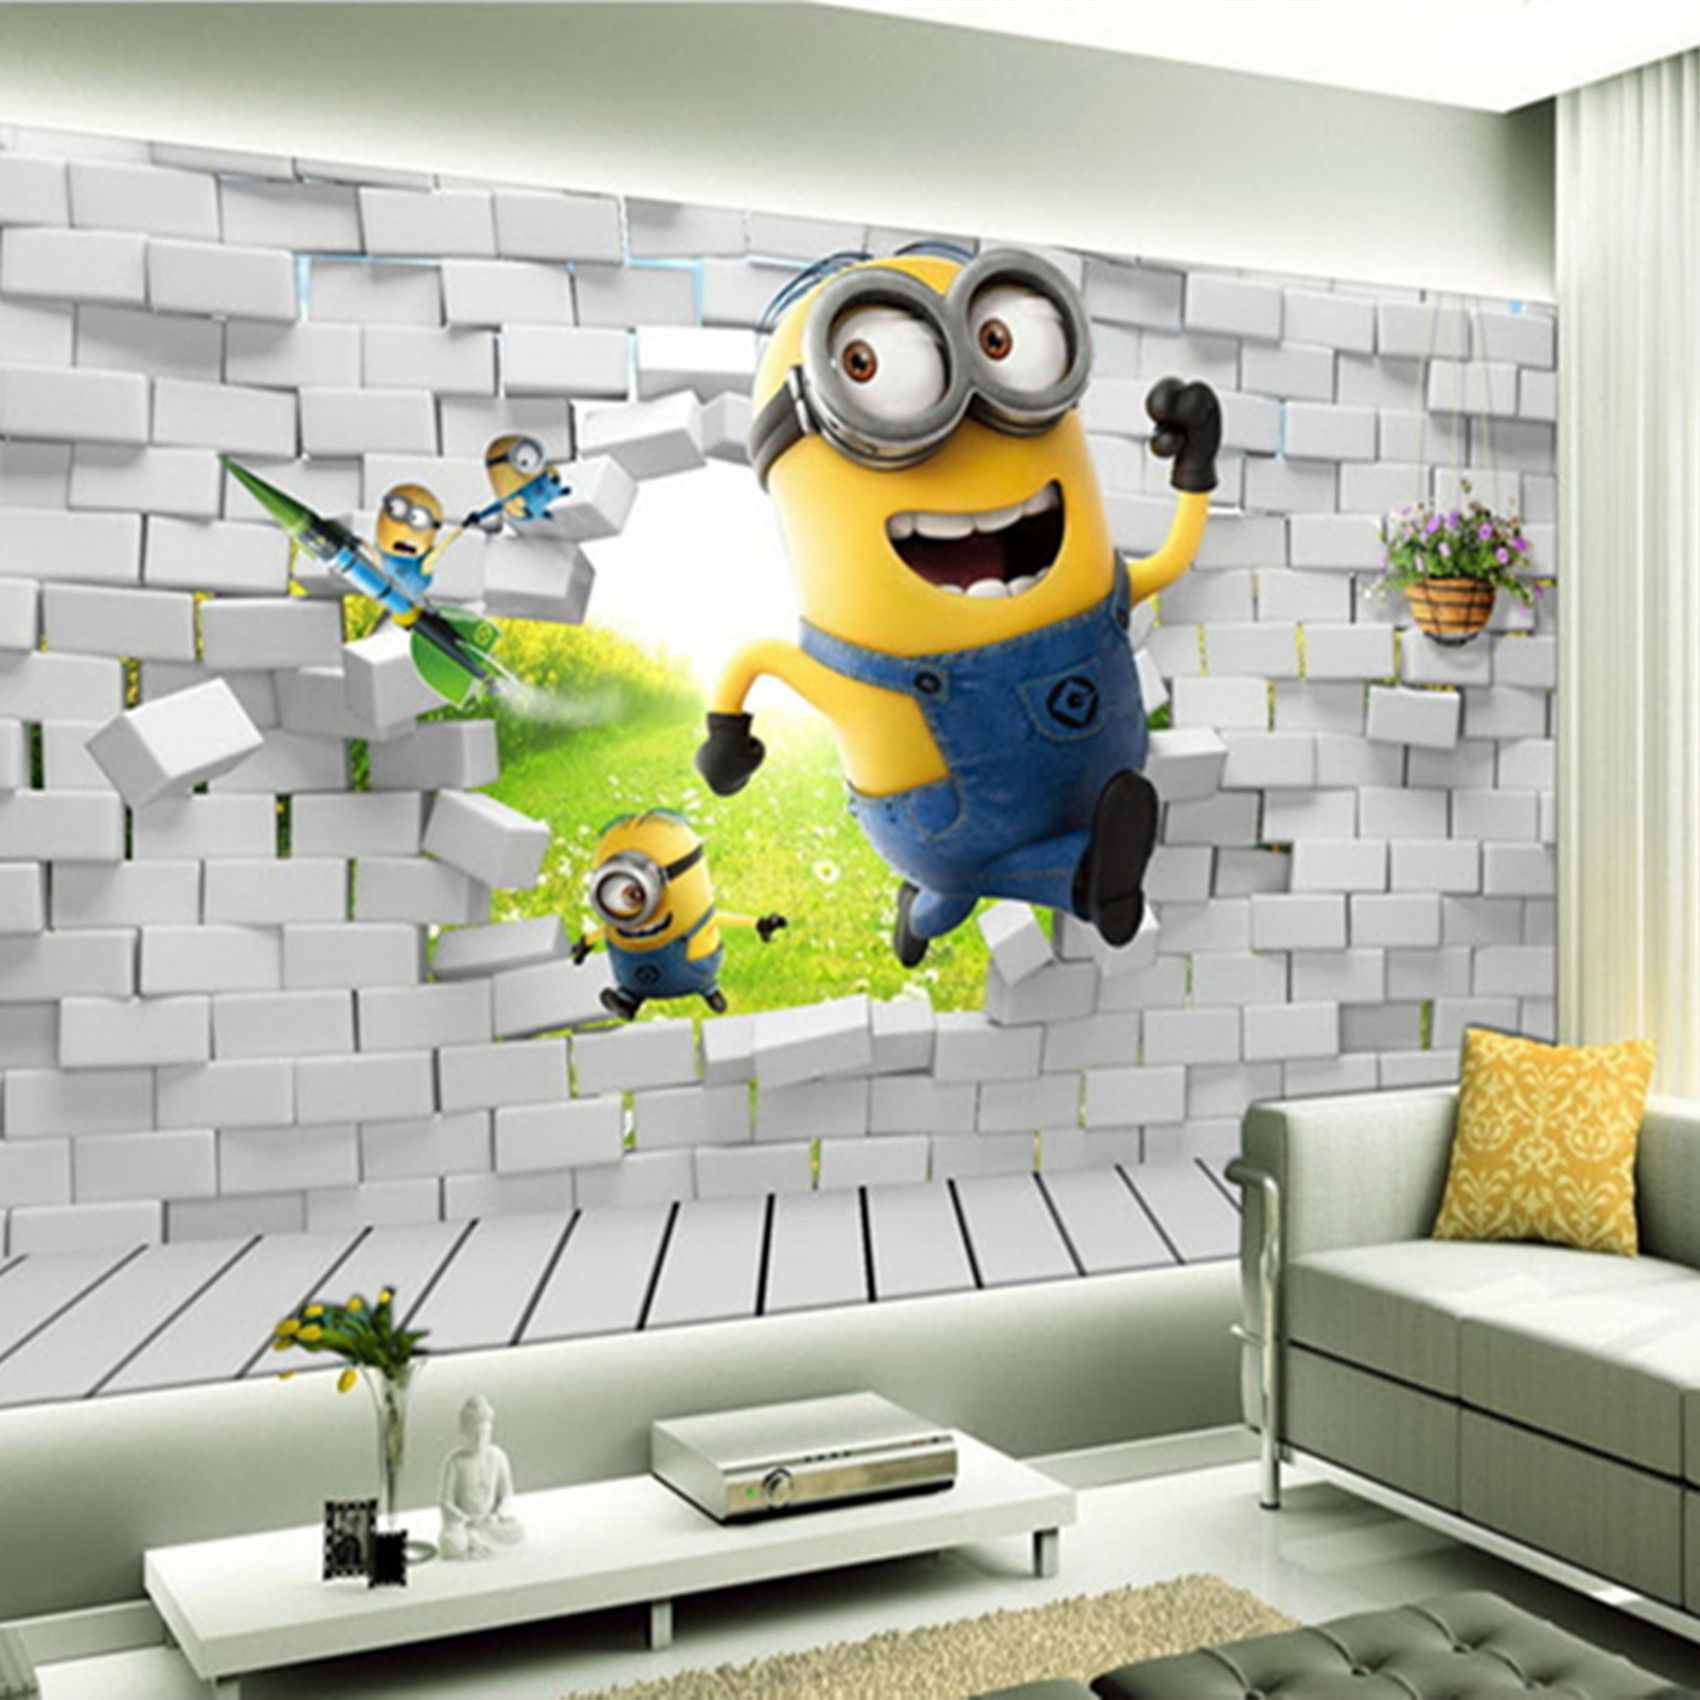 Behangpapier Slaapkamer Behangpapier Slaapkamer 3d Google Zoeken Deco Diy Wallpaper